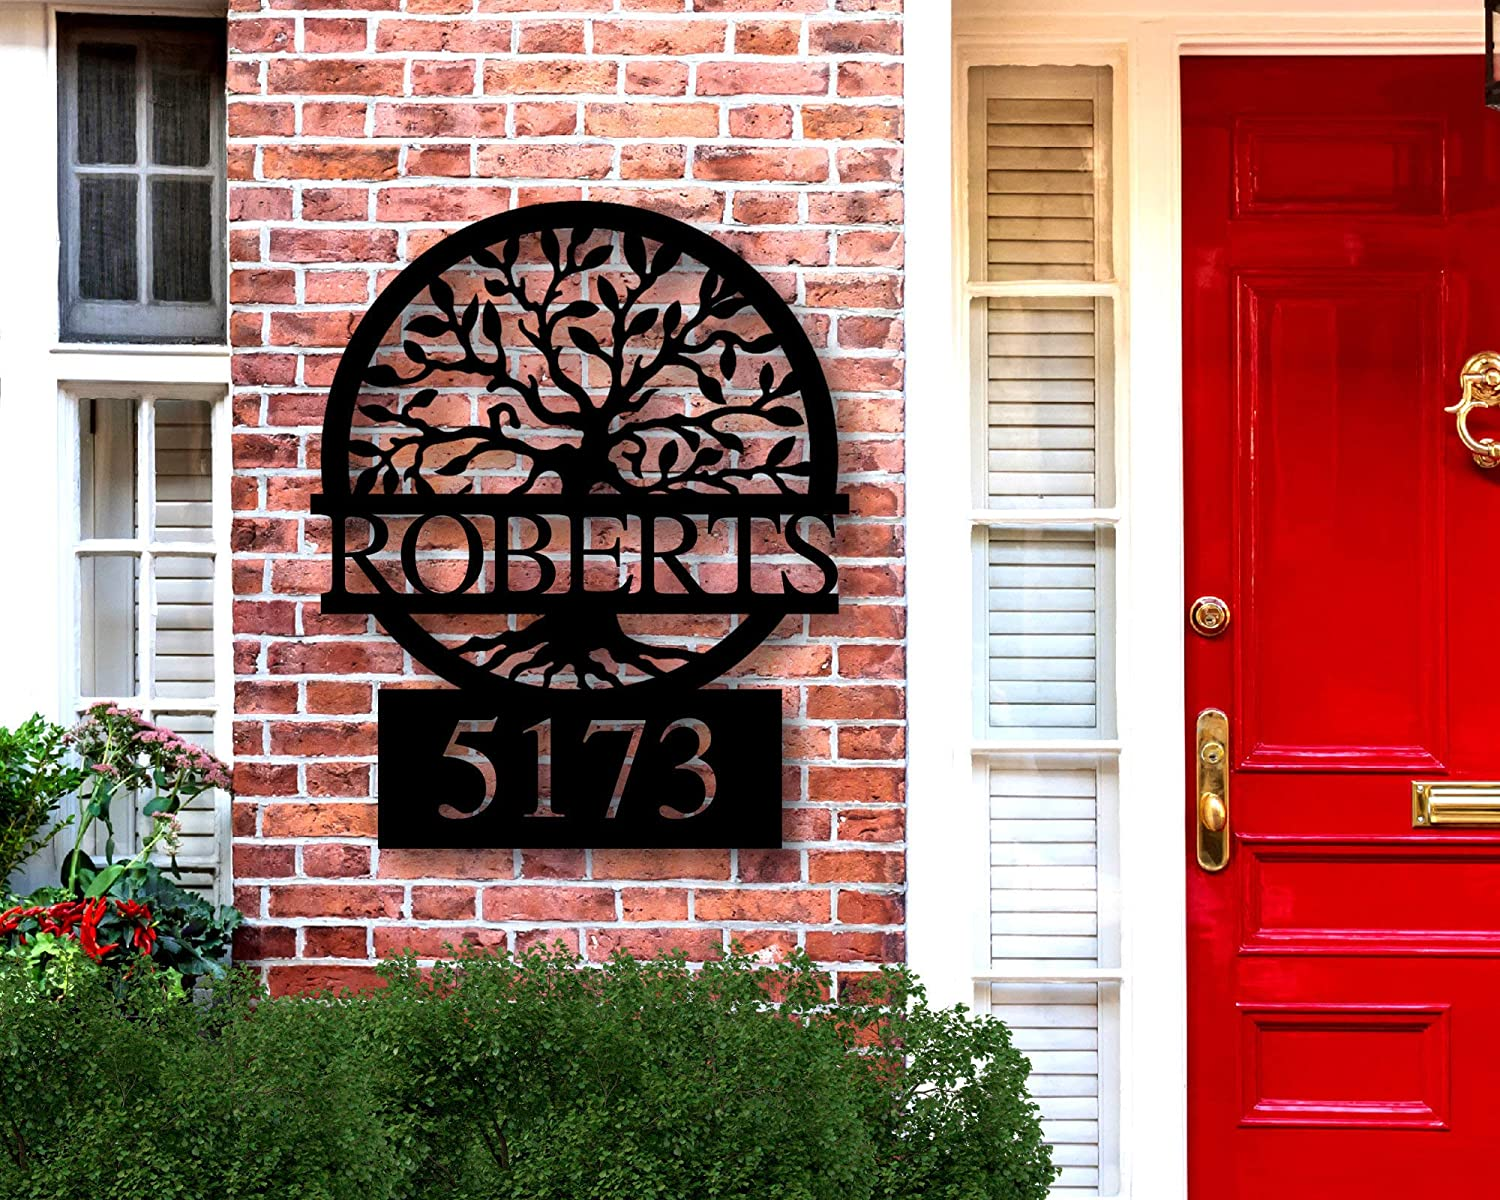 """Tamengi Personalized Name Address Sign for House, Metal Address Plaque for House, Metal Address Plaque, House Numbers Plaque, Address Numbers 24"""""""